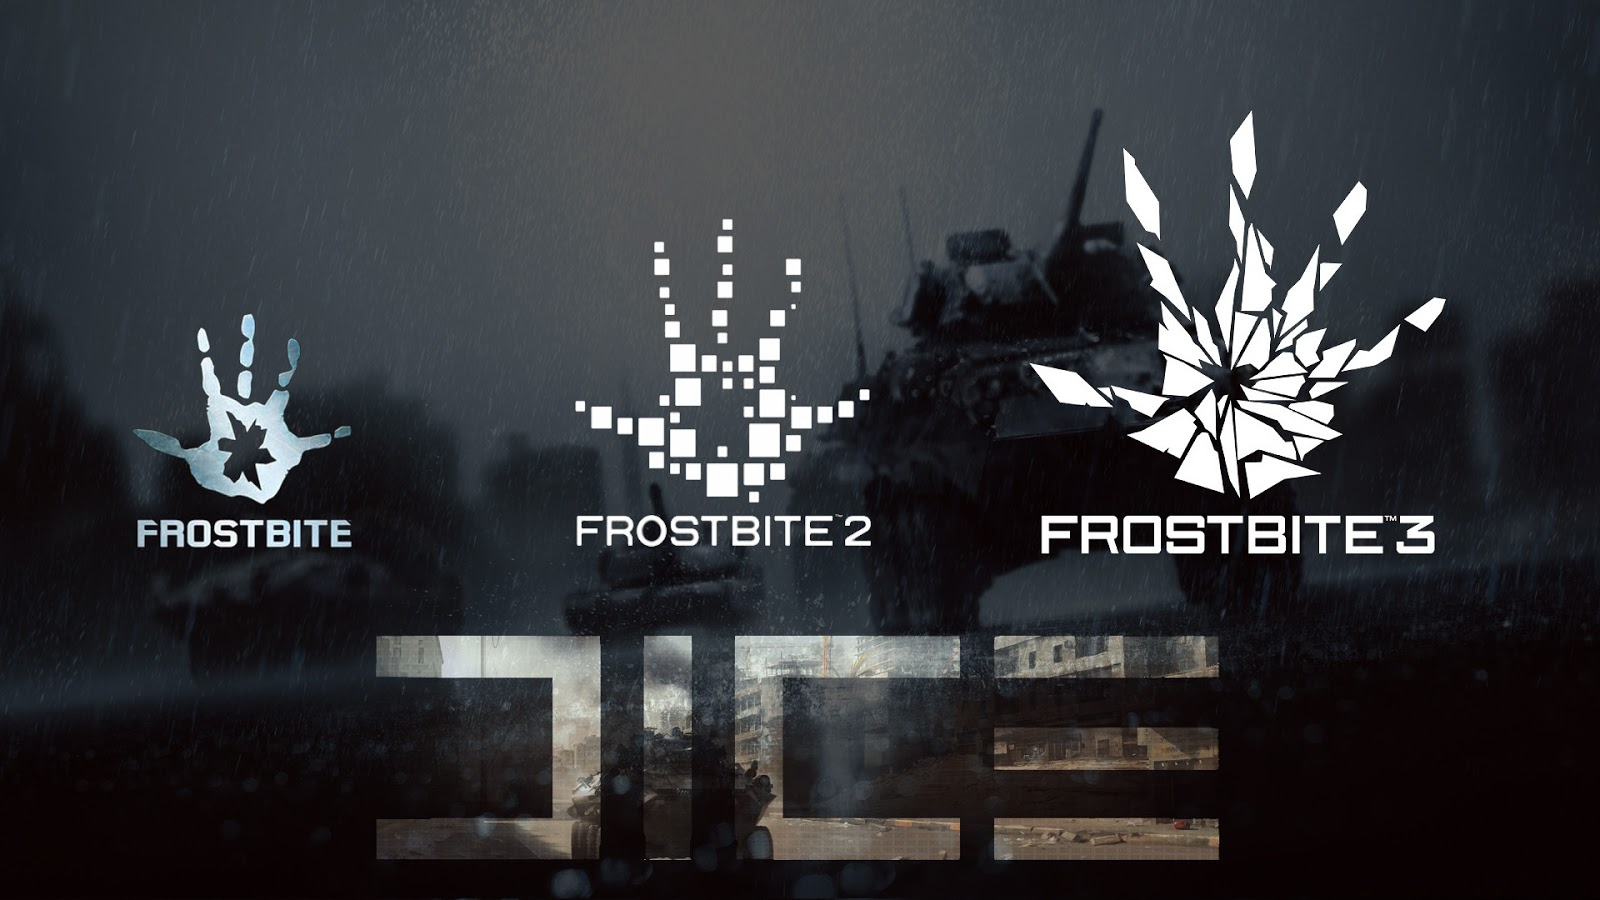 «Battlefield 4» «Dragon Age: Inquisition» Frostbite 3 details